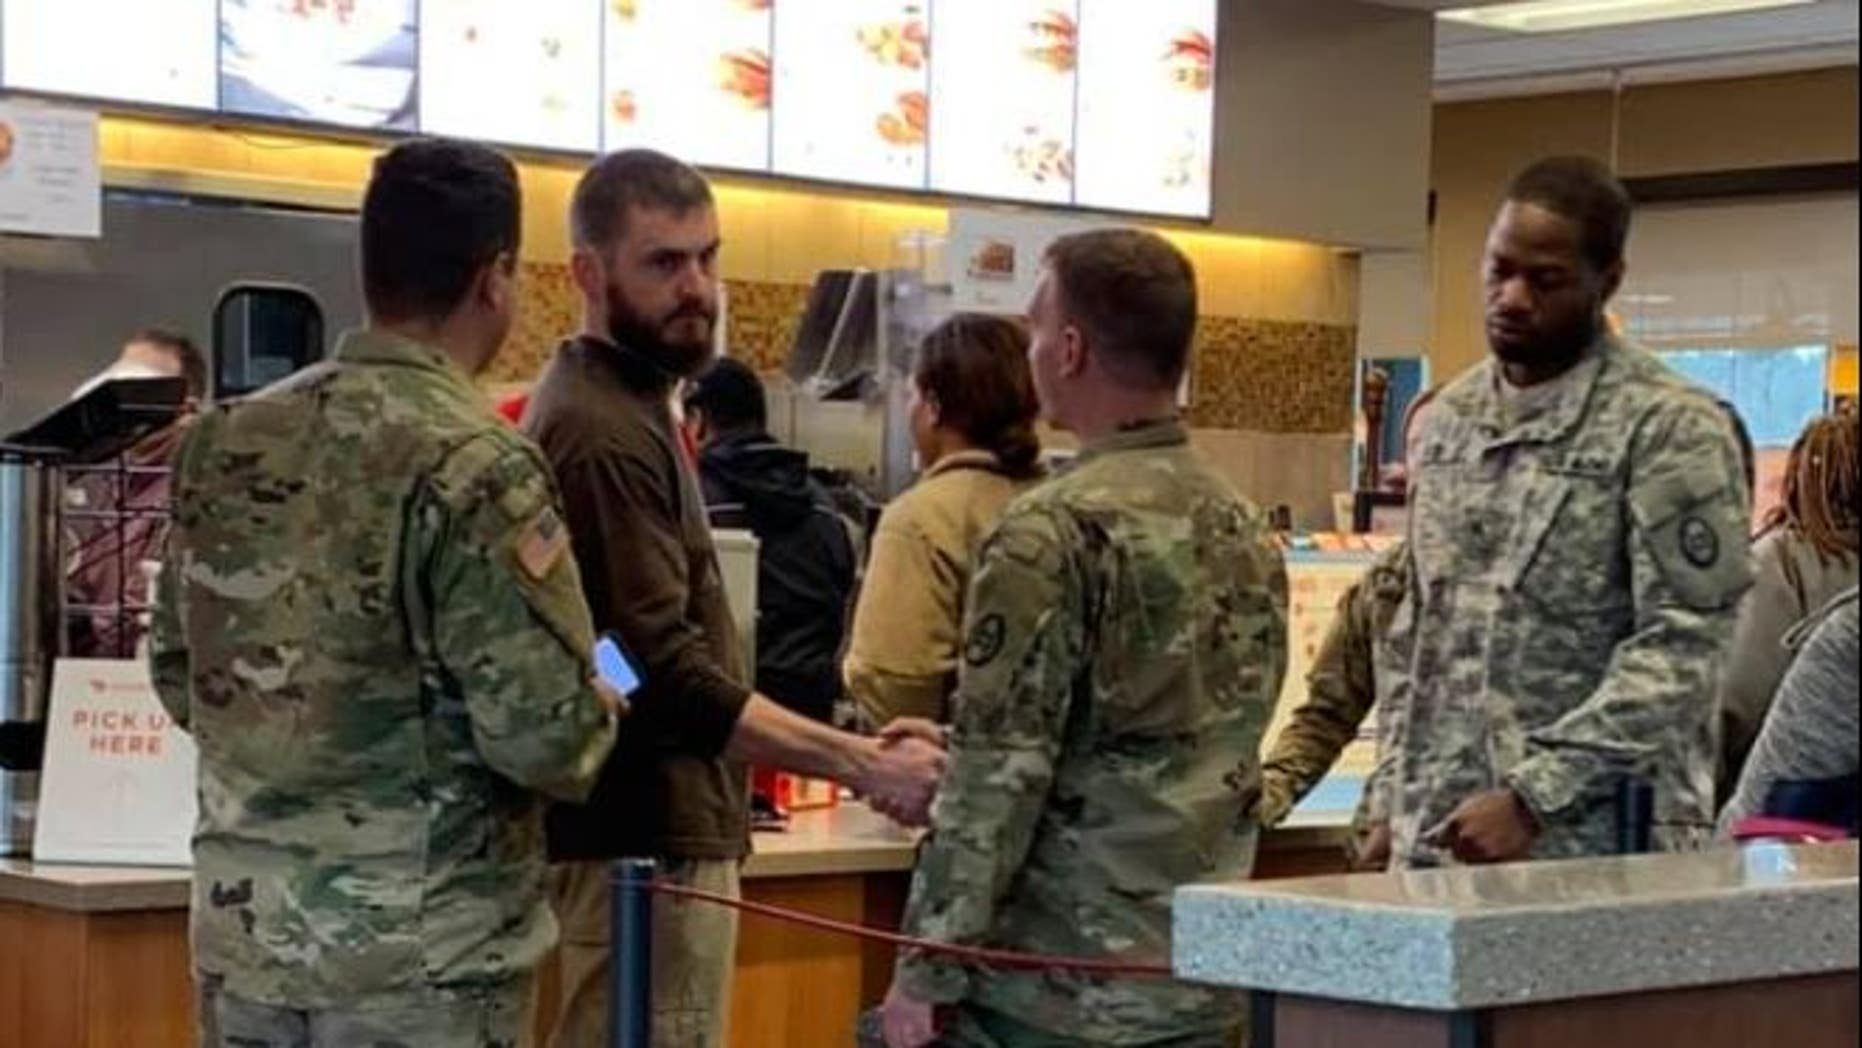 JonathanFull bought Chick-fil-A for a group of service members in North Carolina over the weekend.